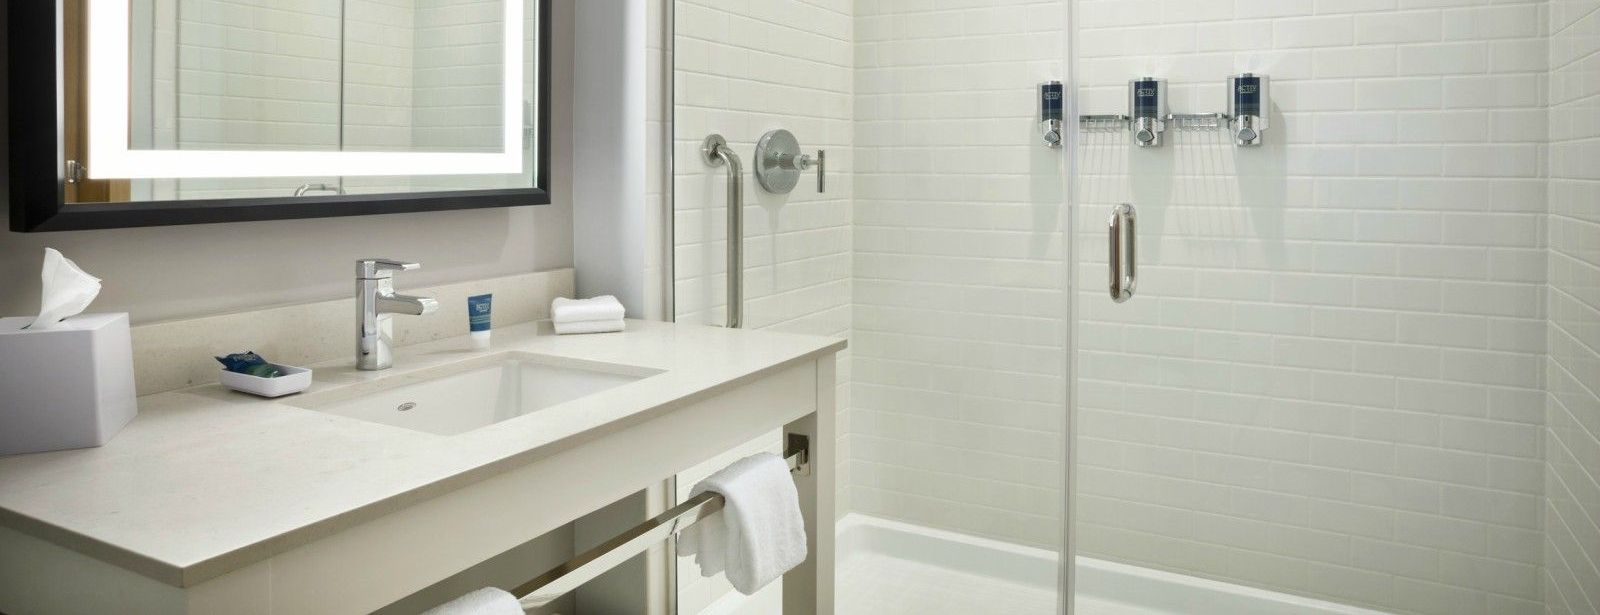 Miami Airport Accommodations - Traditional King Guest Room - Bathroom